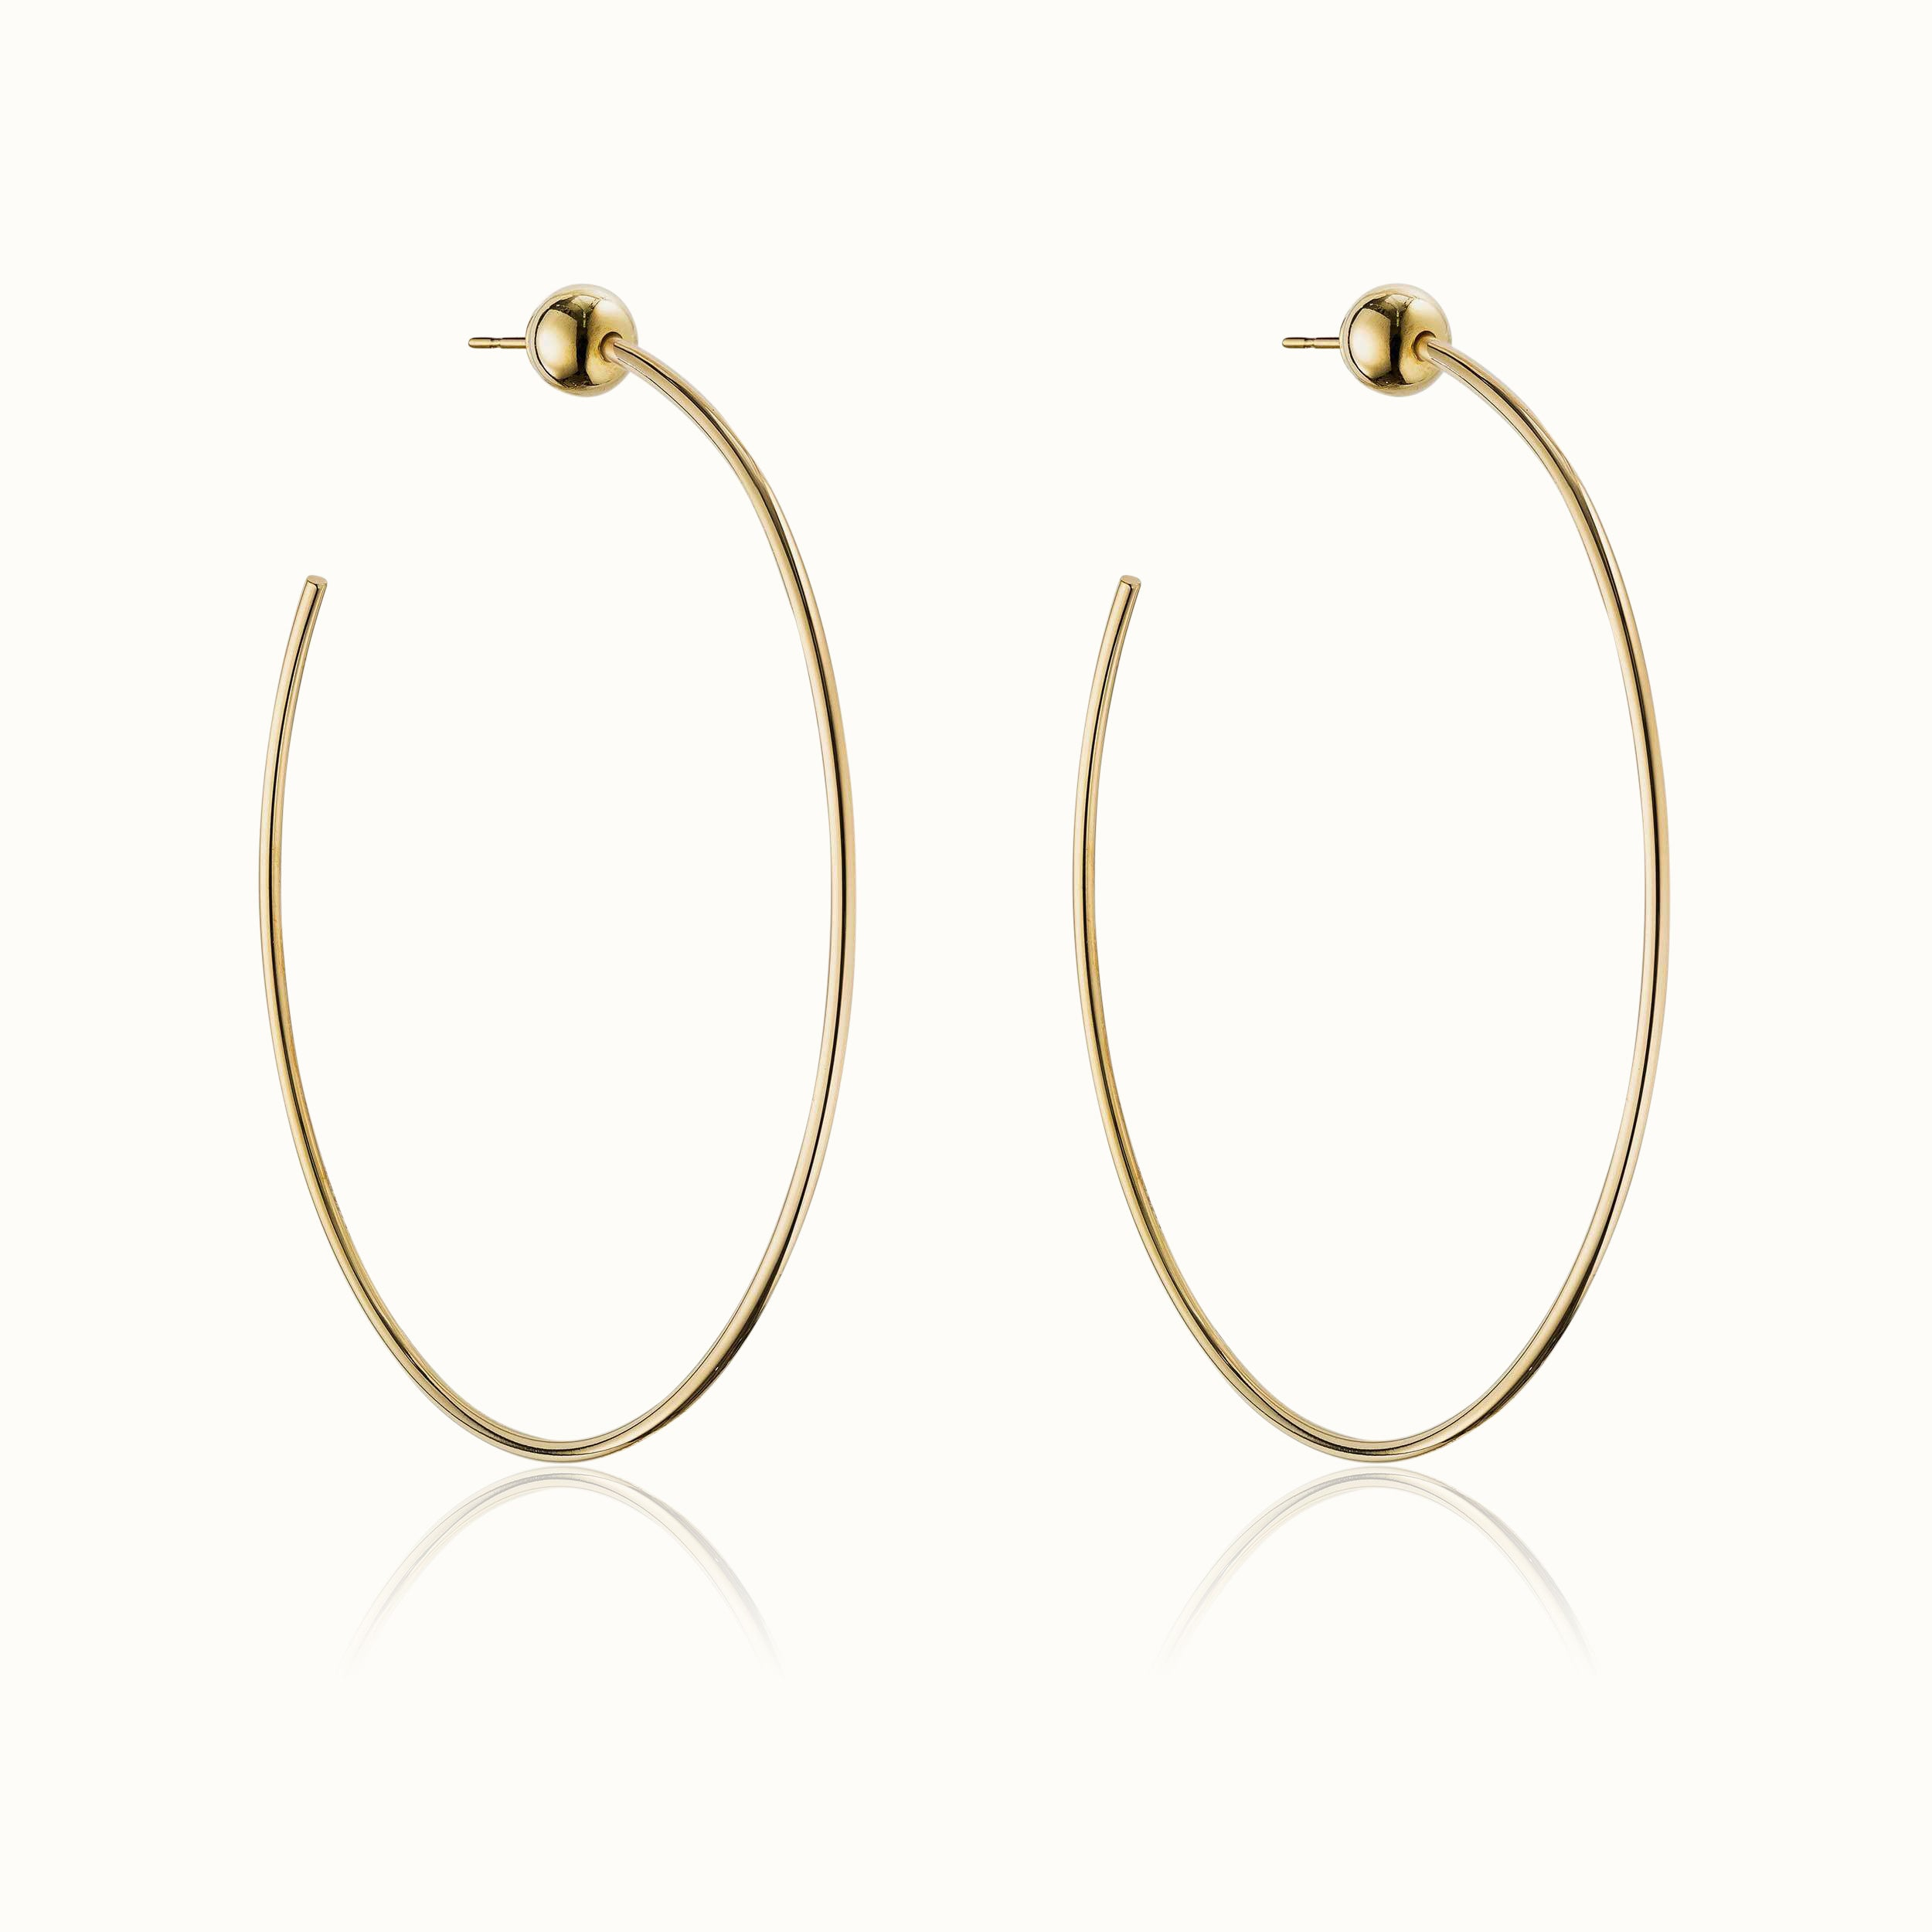 Sfera Hoop Earrings 4.0